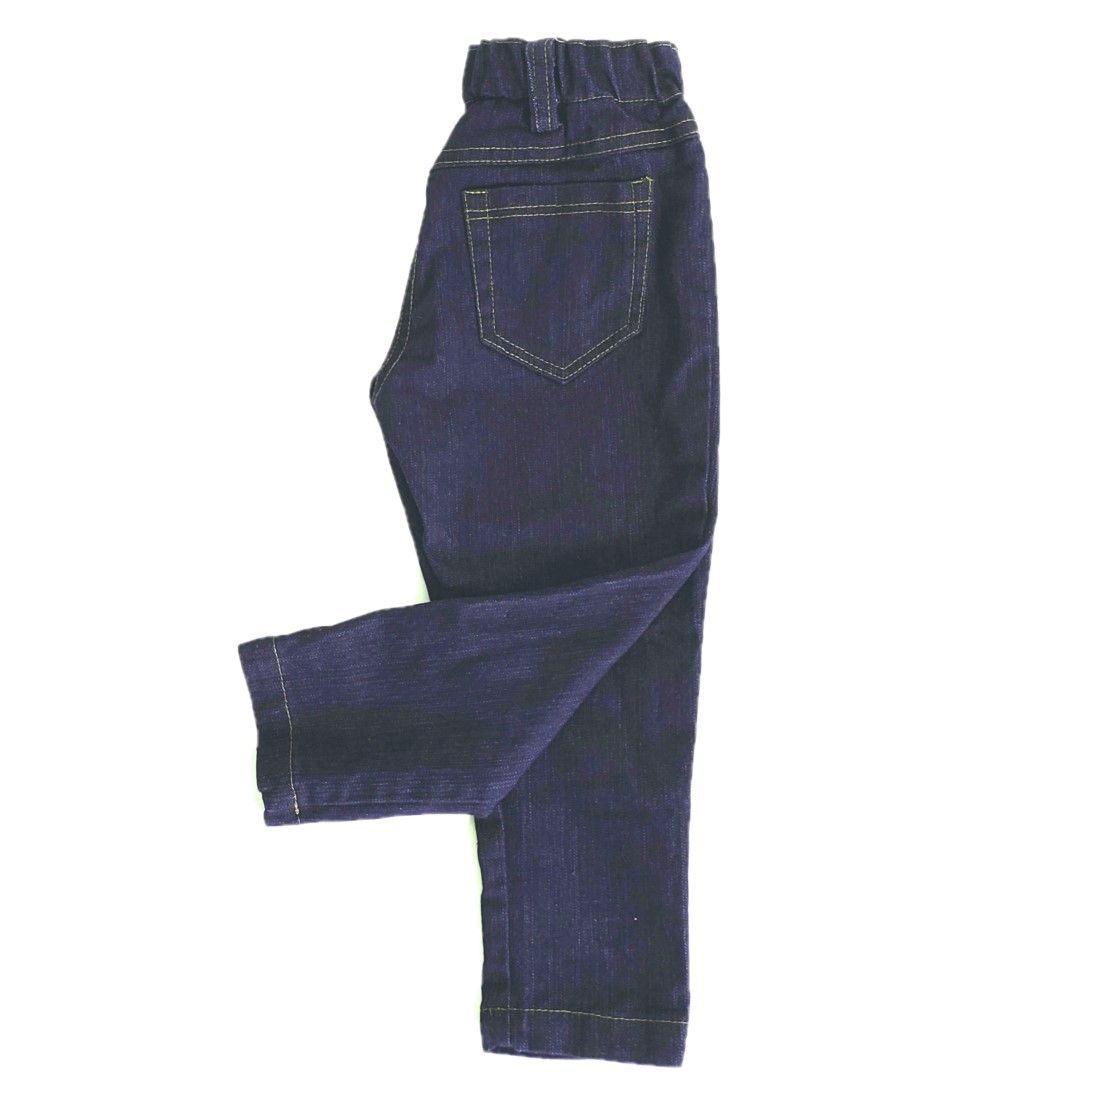 This Denim pull on pants with elastic waist band are a ...